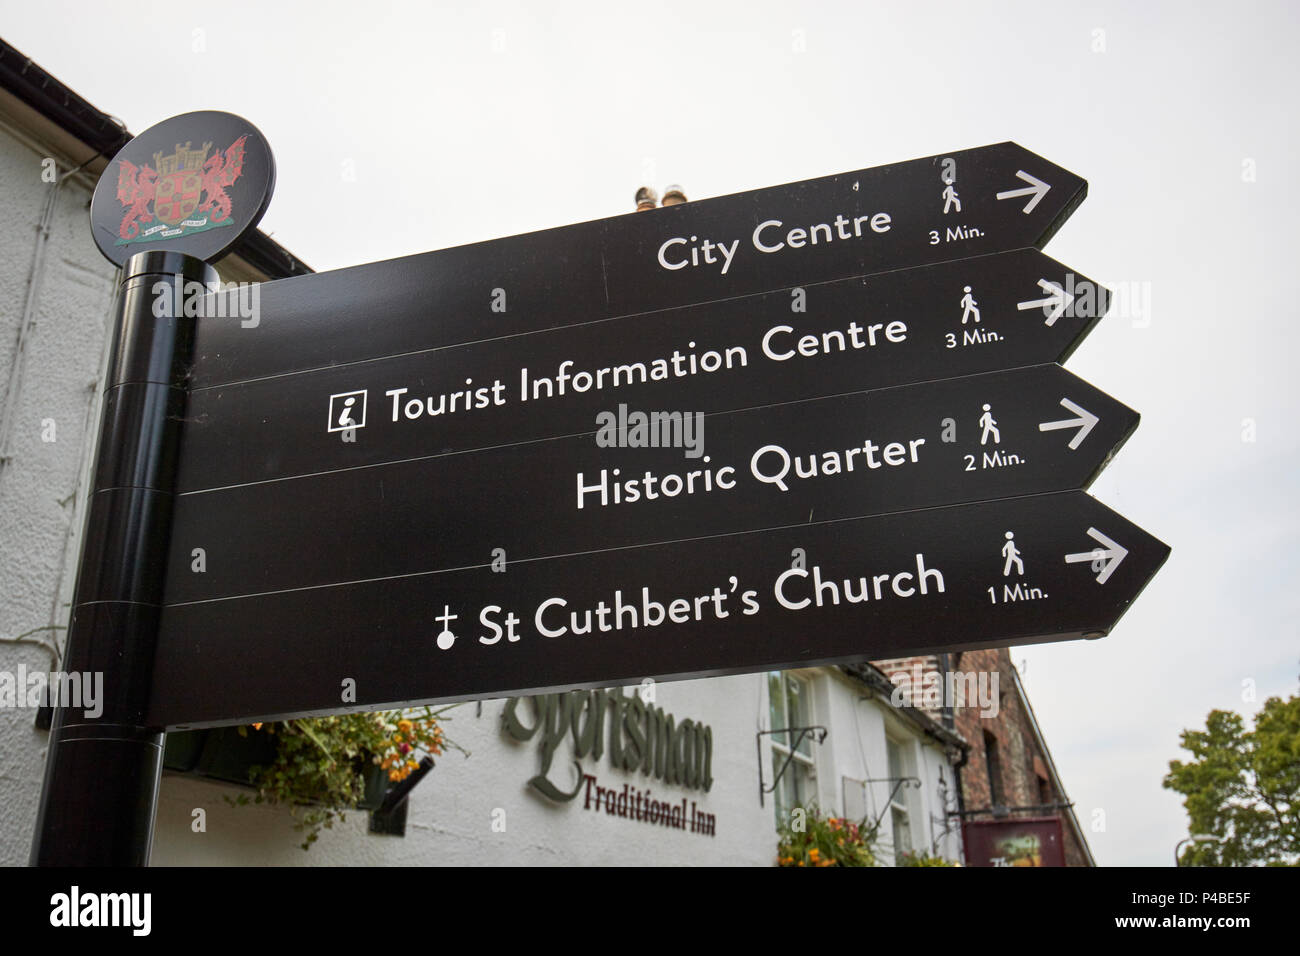 Tourist information sign and walking distances to places in the historic quarter Carlisle Cumbria England UK - Stock Image